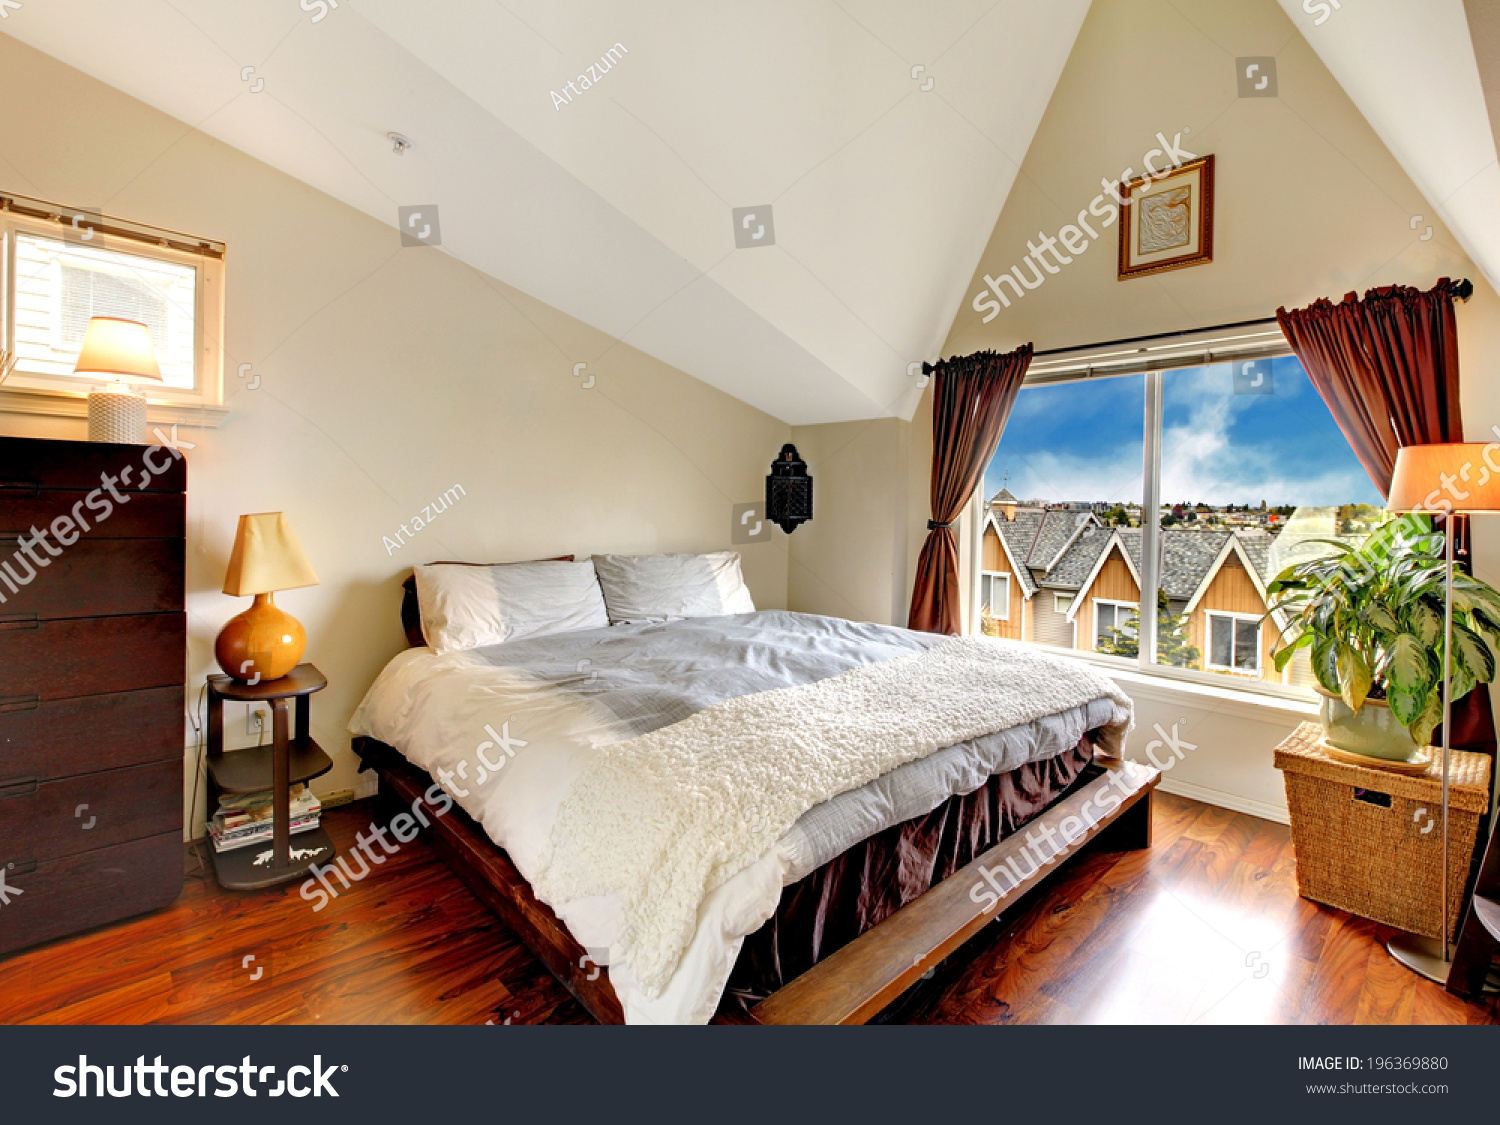 Nice Bedroom With Vaulted Ceiling Hardwood Floor And Window Furnished With